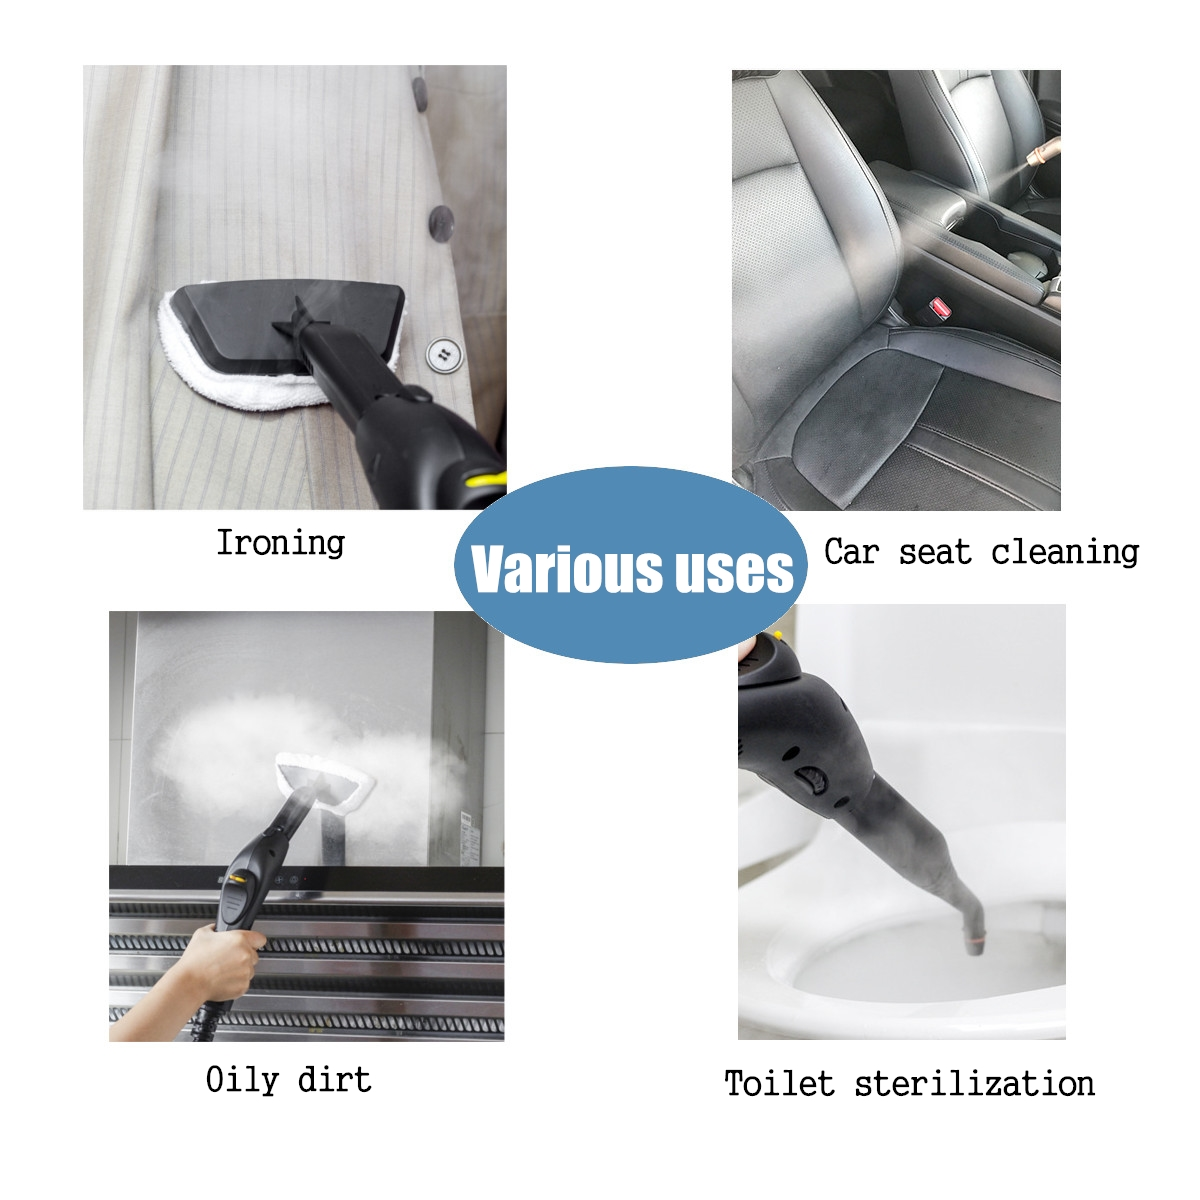 220V High Pressure Multifunctional Handheld Mop Floor Steam Cleaner Cleaning Home Car Wash Brush